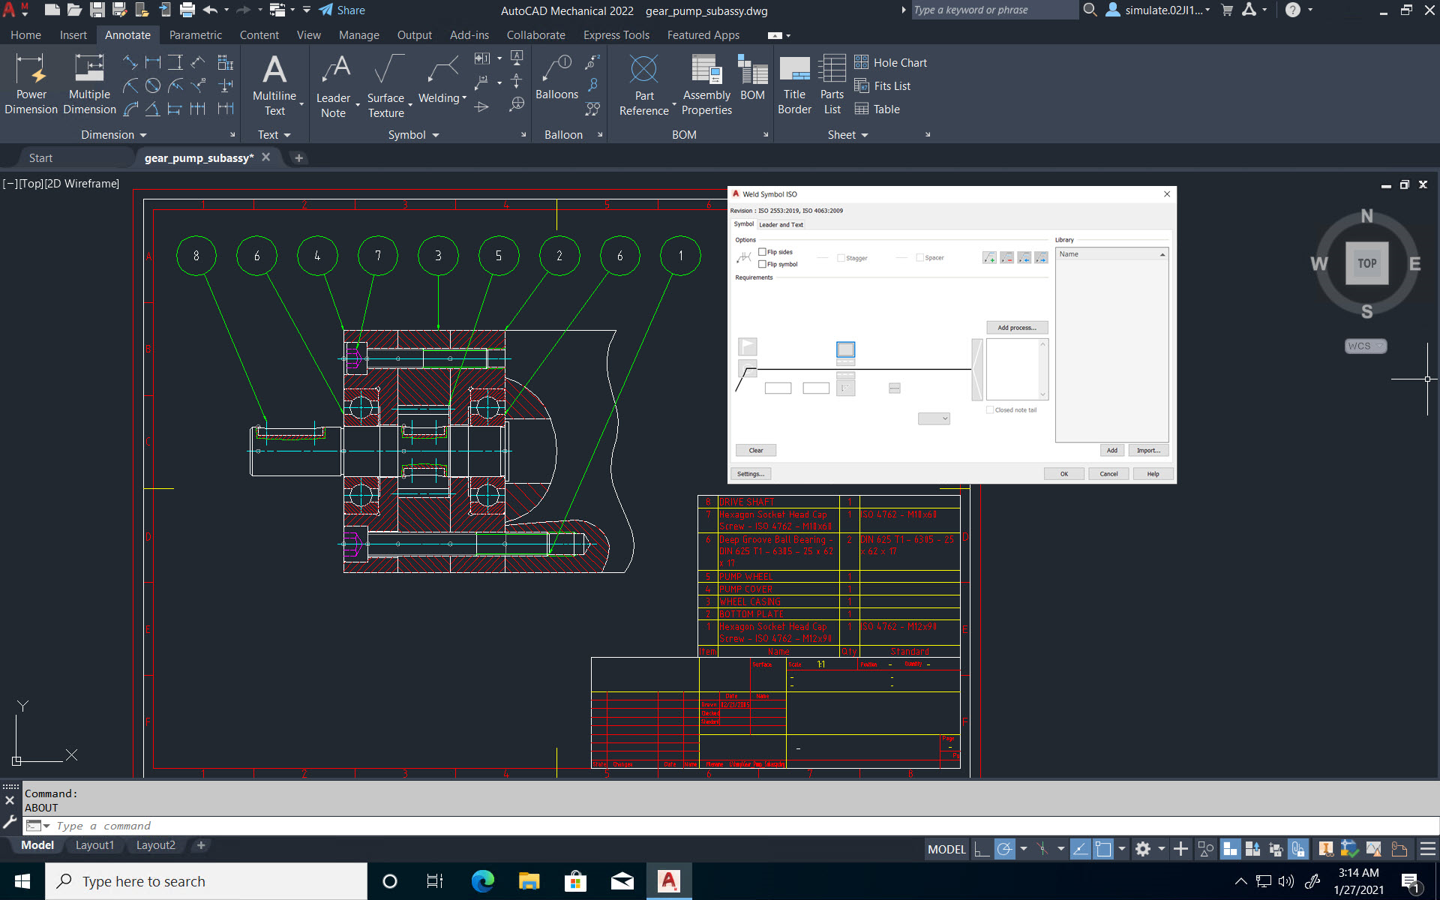 autocad-specialized-toolset-2021-5a